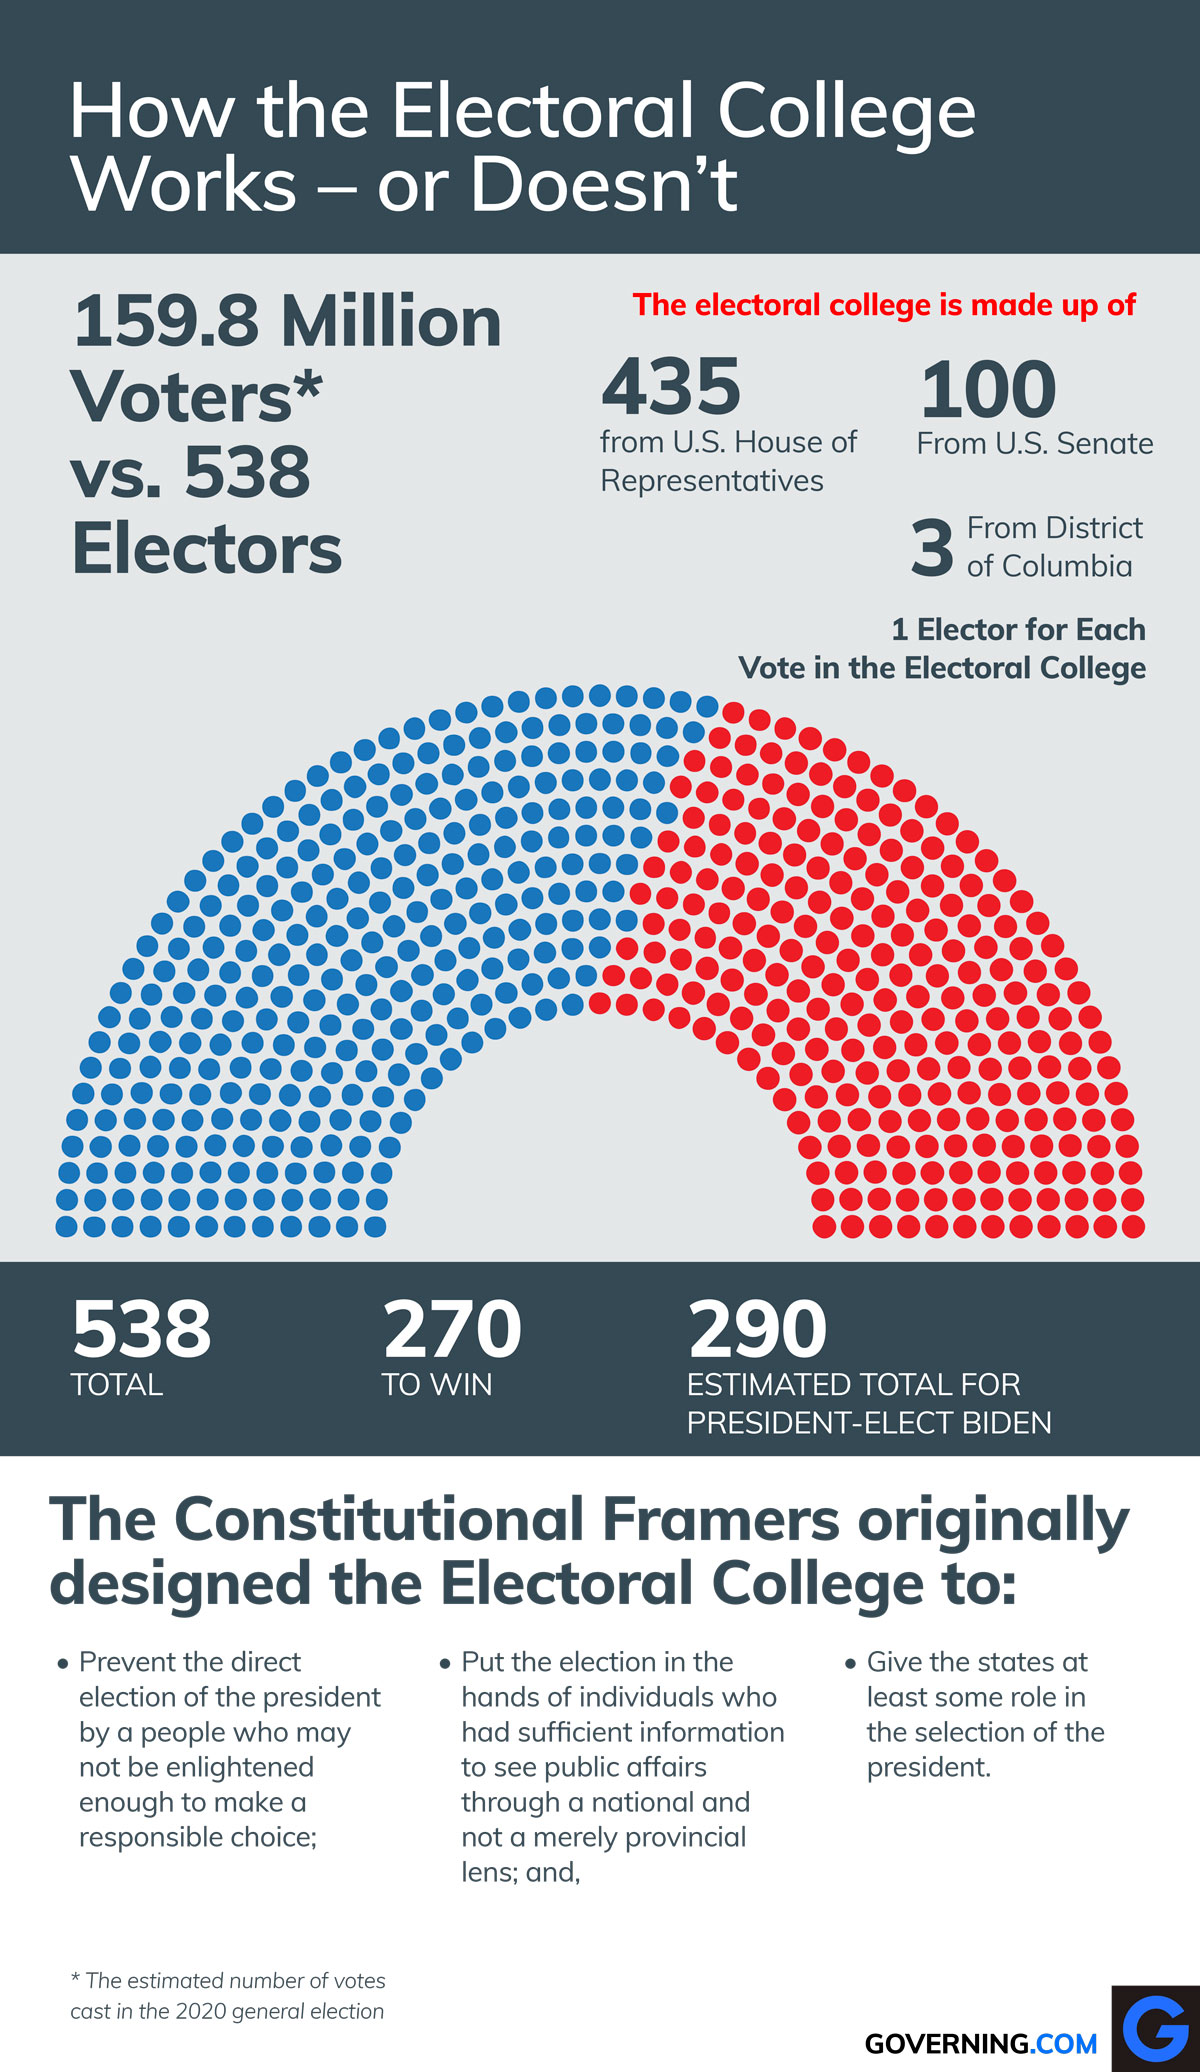 An+infographic+on+the+electoral+college